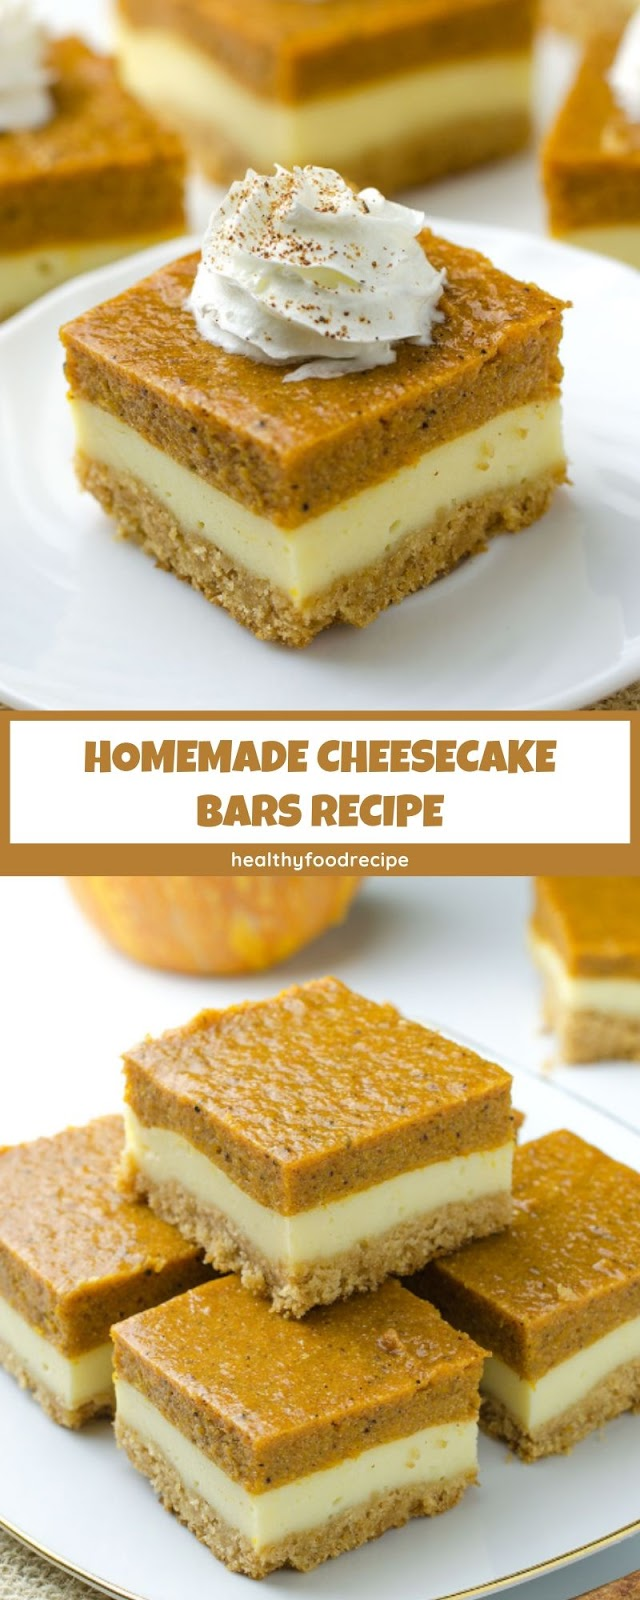 HOMEMADE CHEESECAKE BARS RECIPE